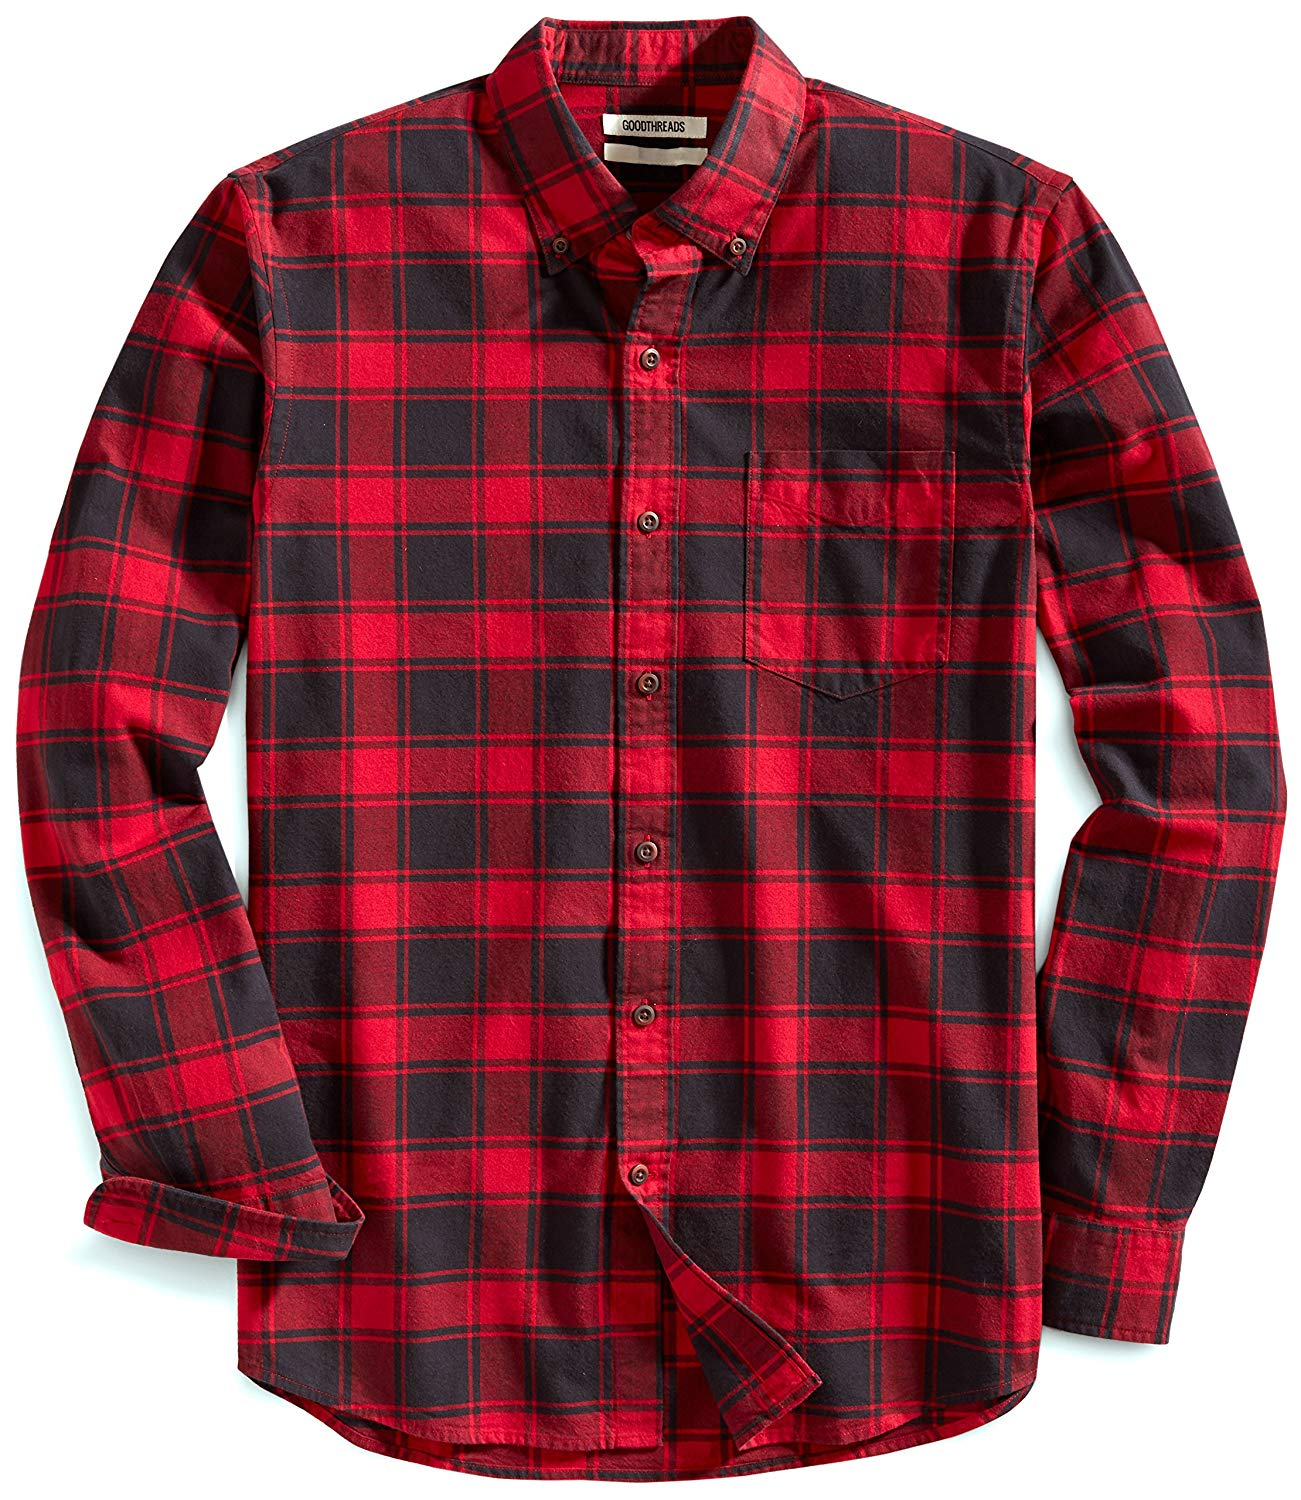 Goodthreads Men's Slim-fit Buffalo Plaid Oxford Shirt